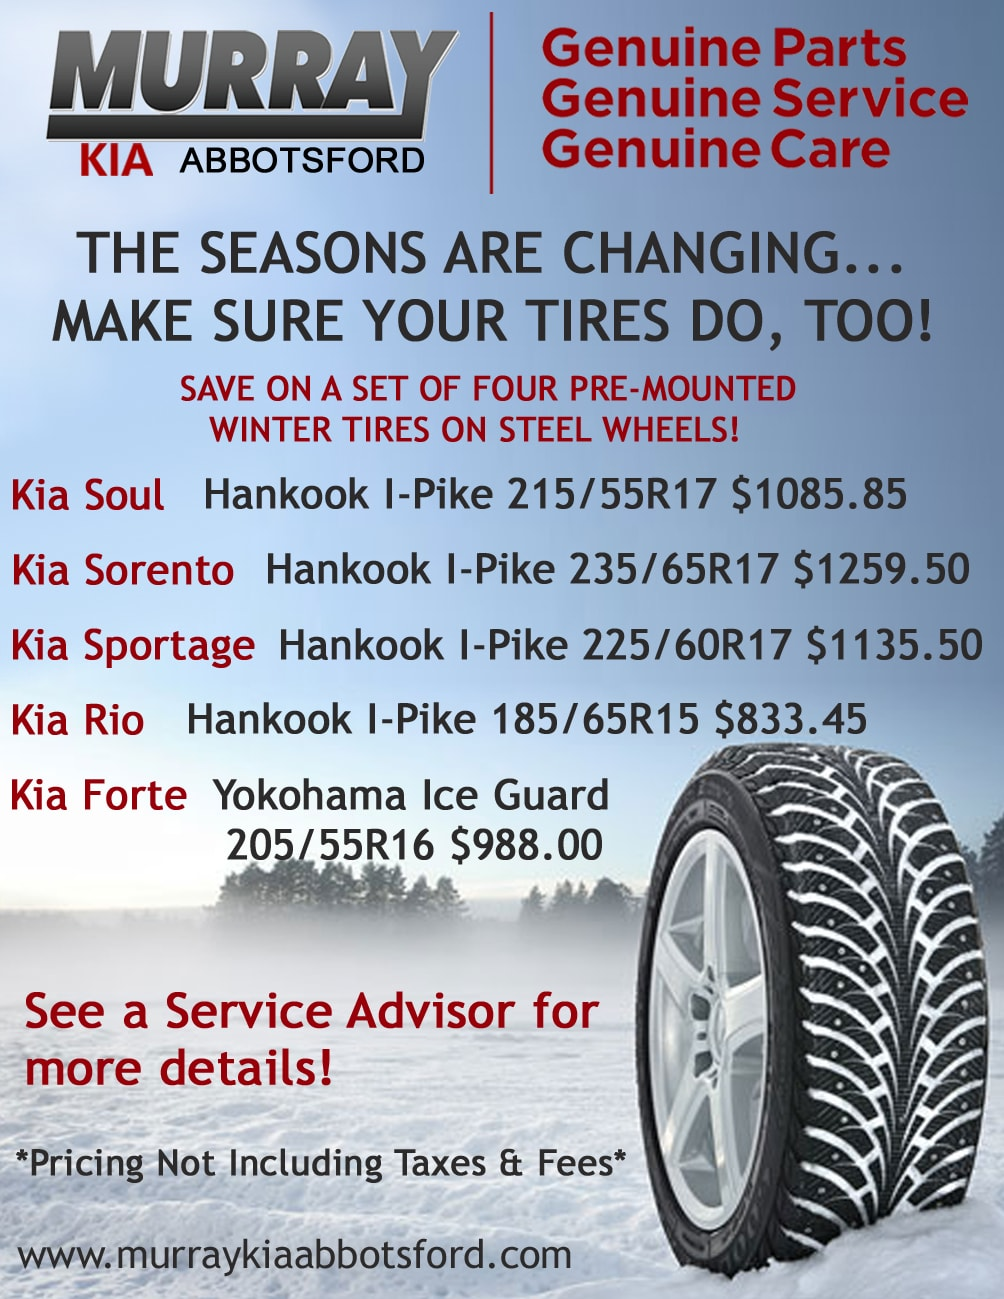 Winter tires have tread block patterns designed to grip snow-, ice-, and slush-covered roads better than any all-season tire. PACKAGE CONVENIENCE A Winter / Snow Tire & Wheel Package makes it easy to swap out your package for a winter set when the weather demands it.